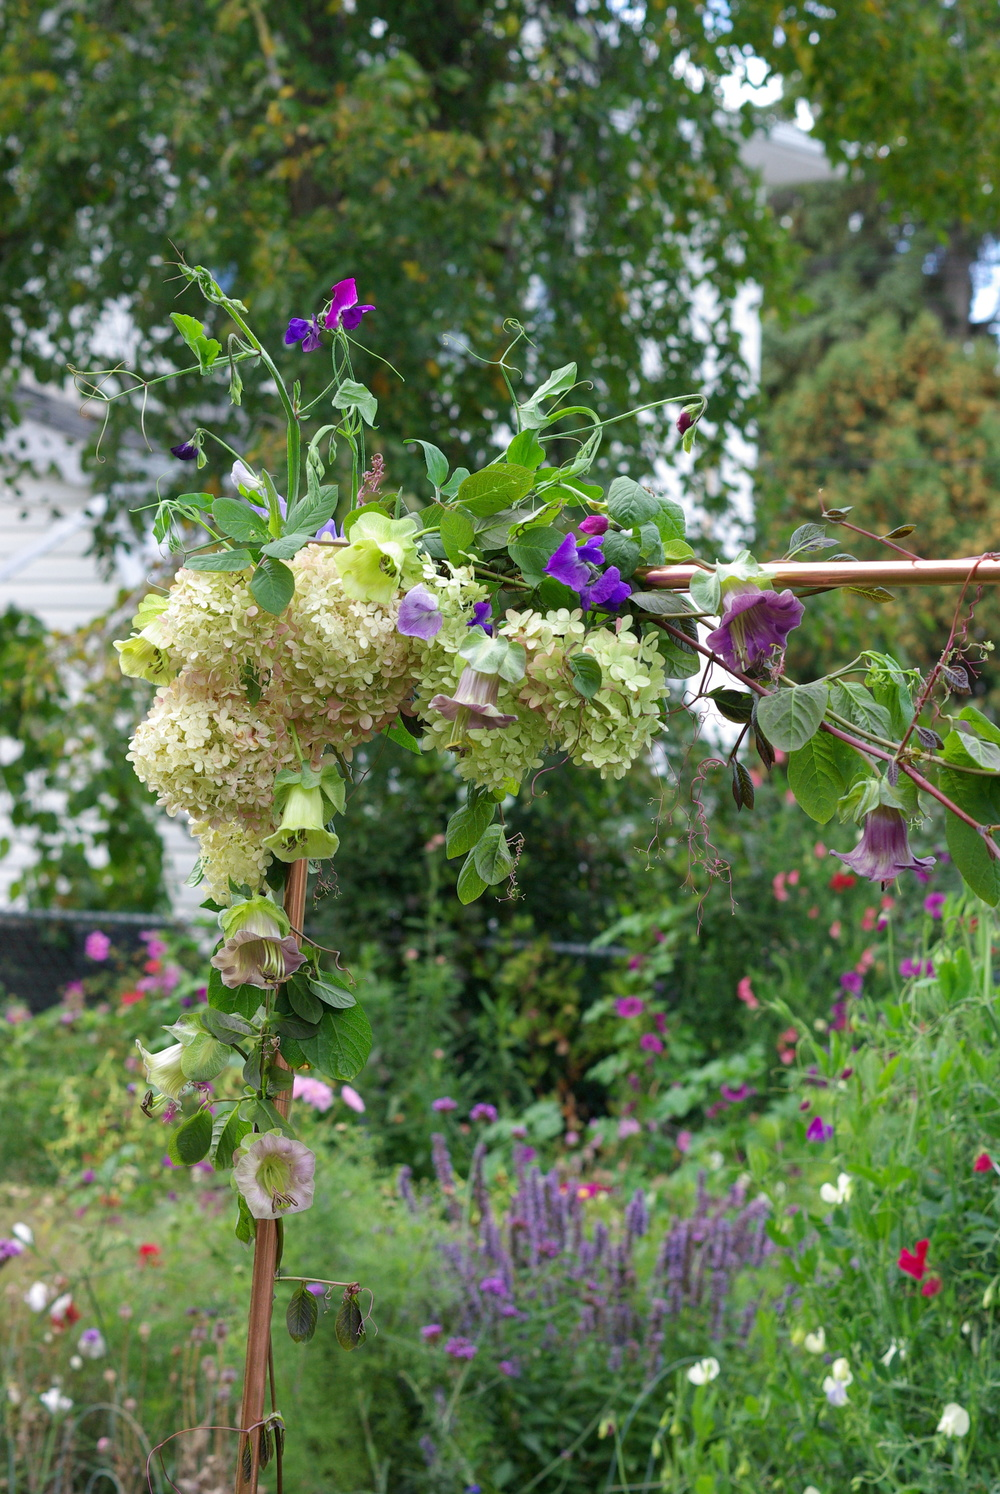 Mid-September - Cobea vine, 'Limelight' hydrangea, sweet peas